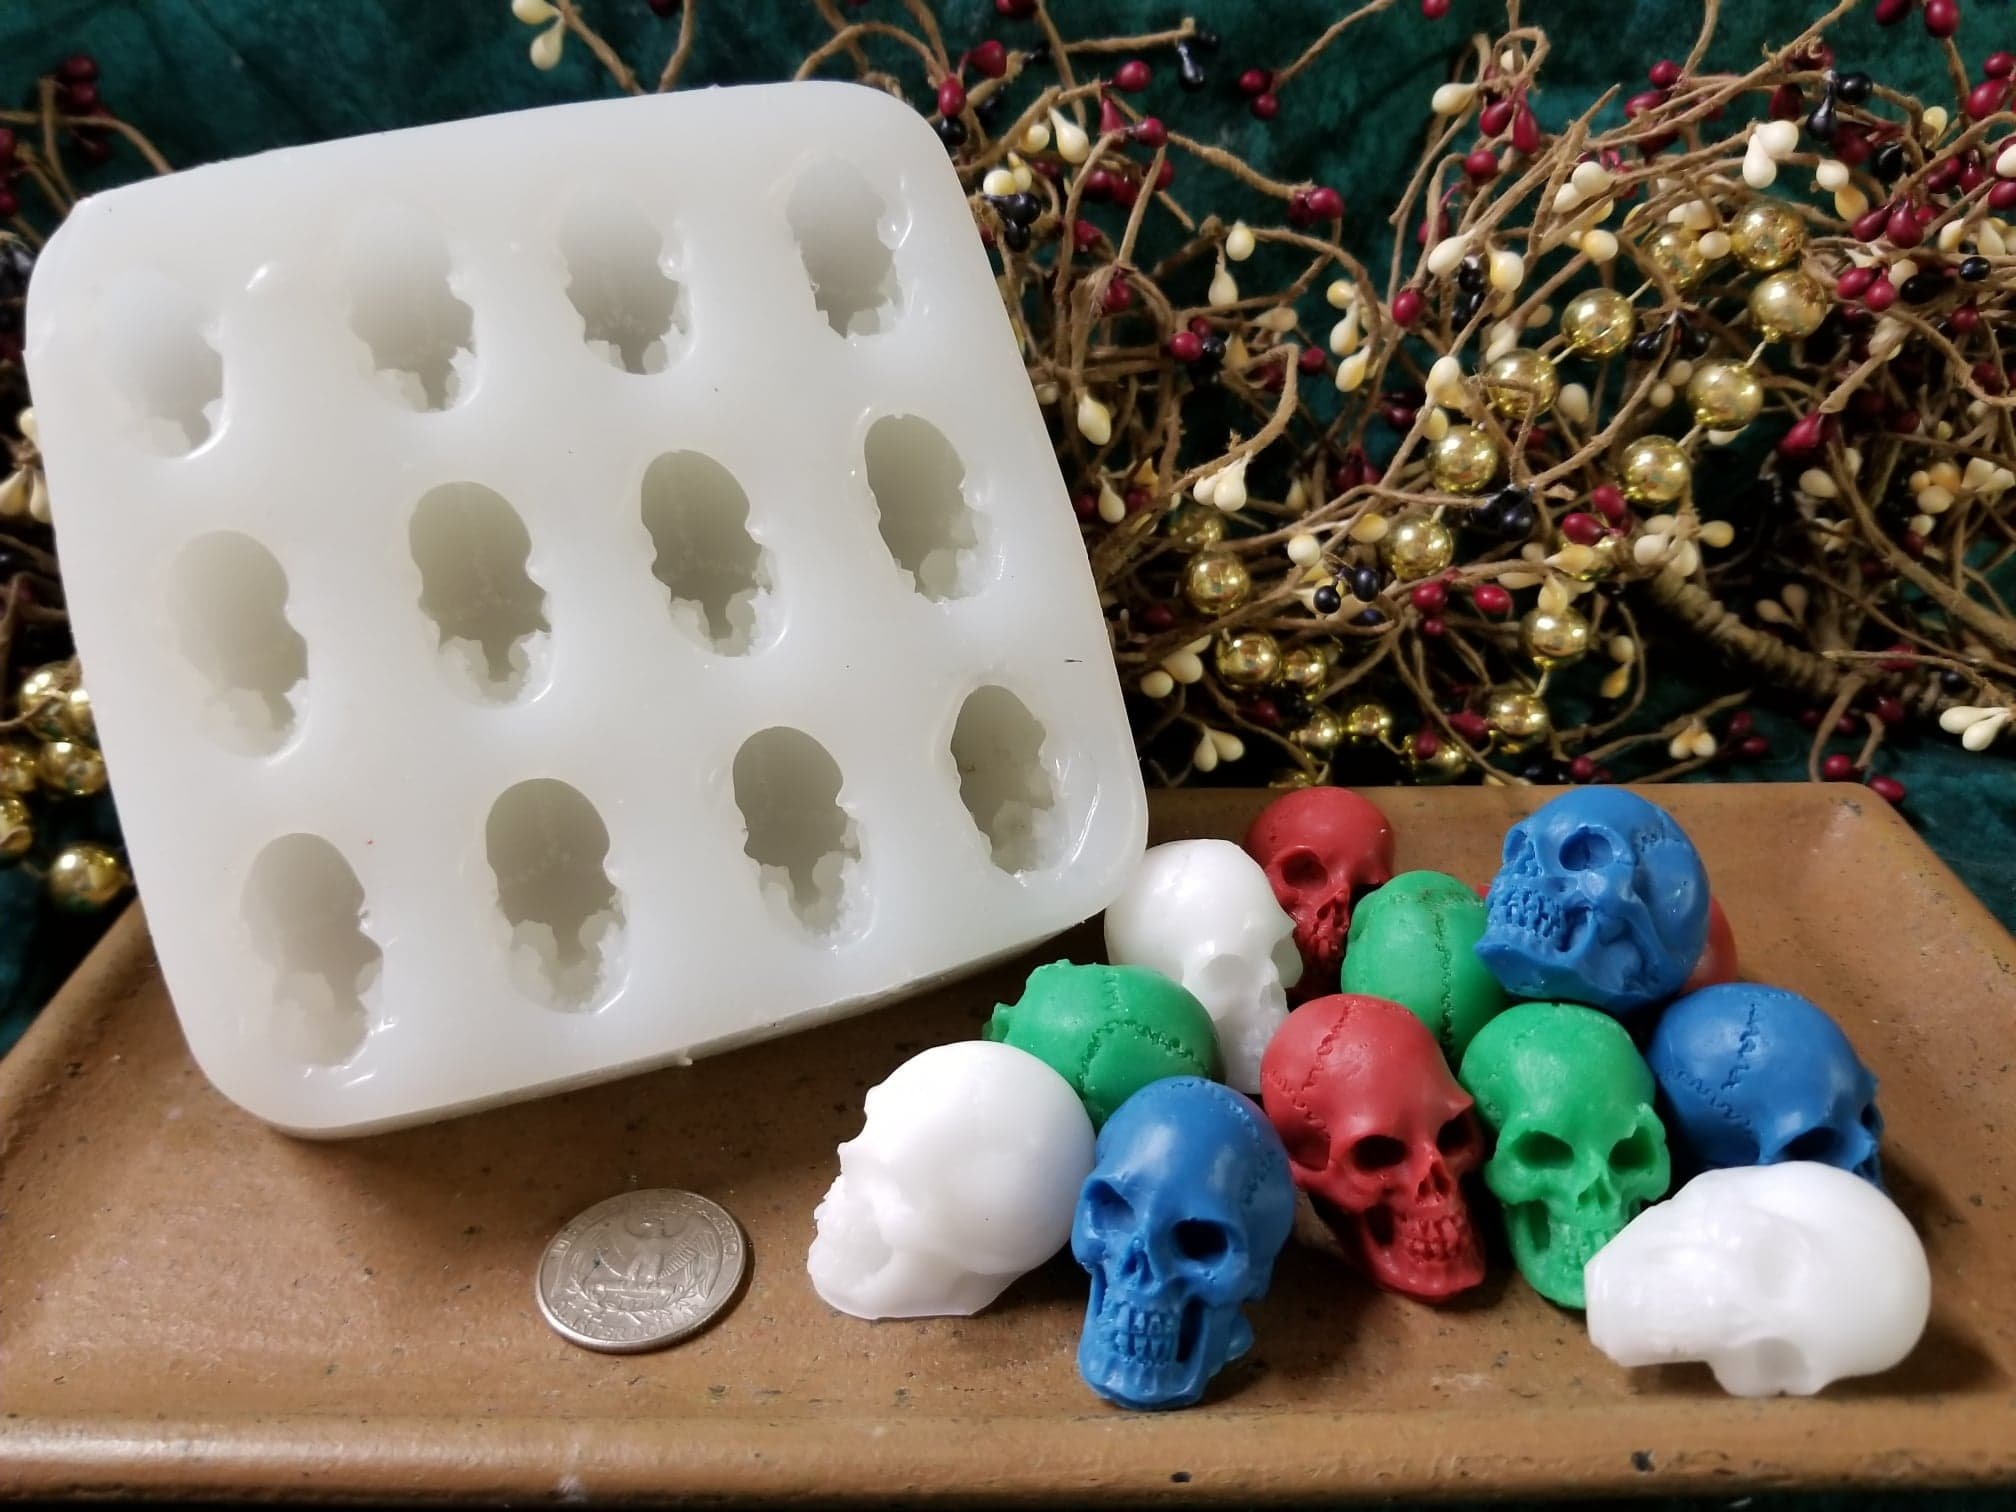 Skull Small Embed 12 Cavity Silicone Mold 5532 Food-Soap-Candle-Resin-Flexible